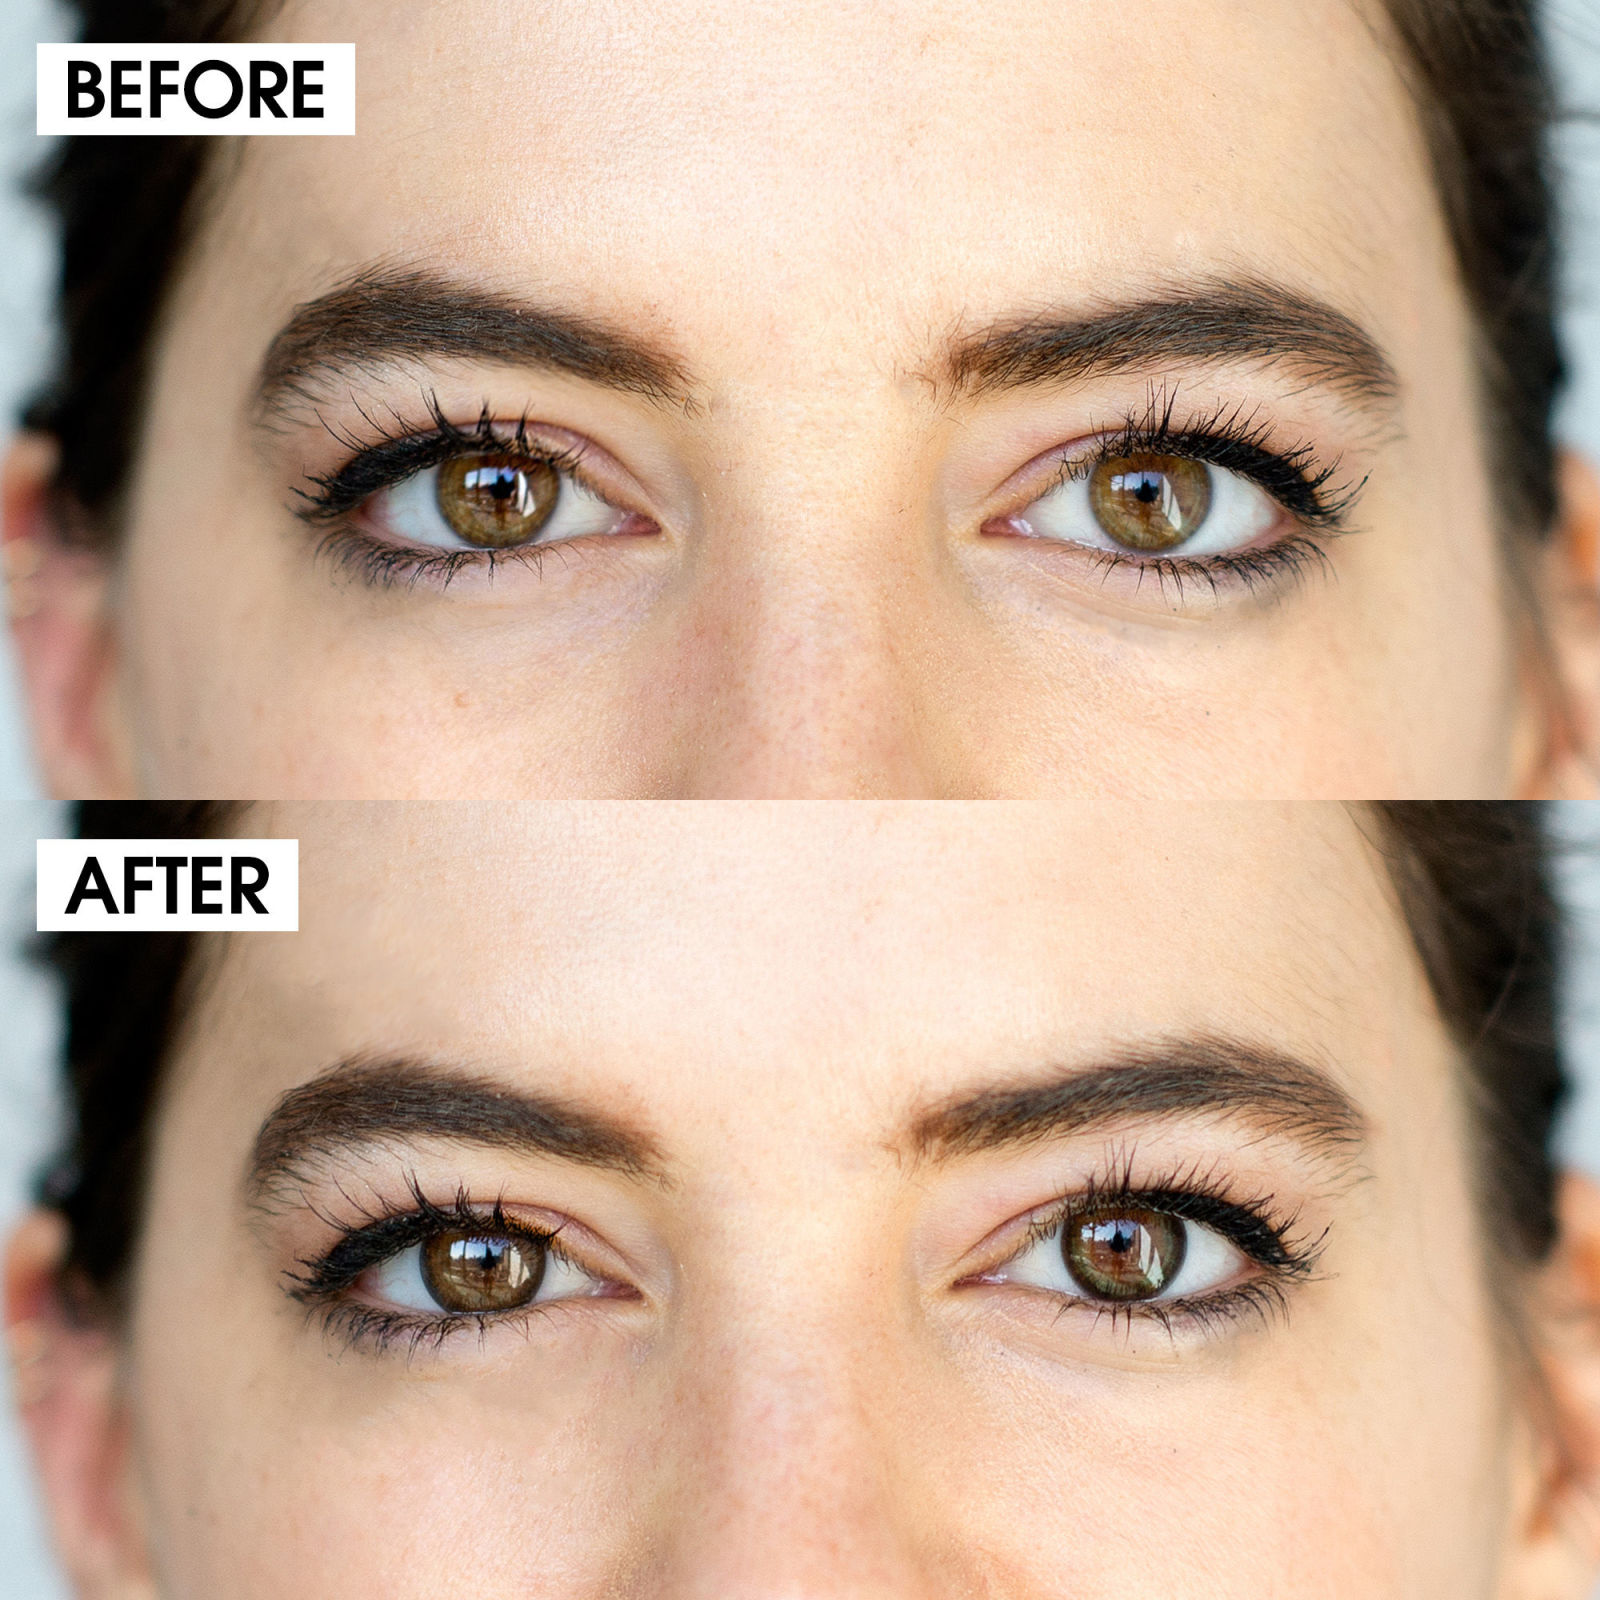 I Tried Eye Enhancing Contact Lenses Acuvue Define Lenses Do These Contacts Make Me Look